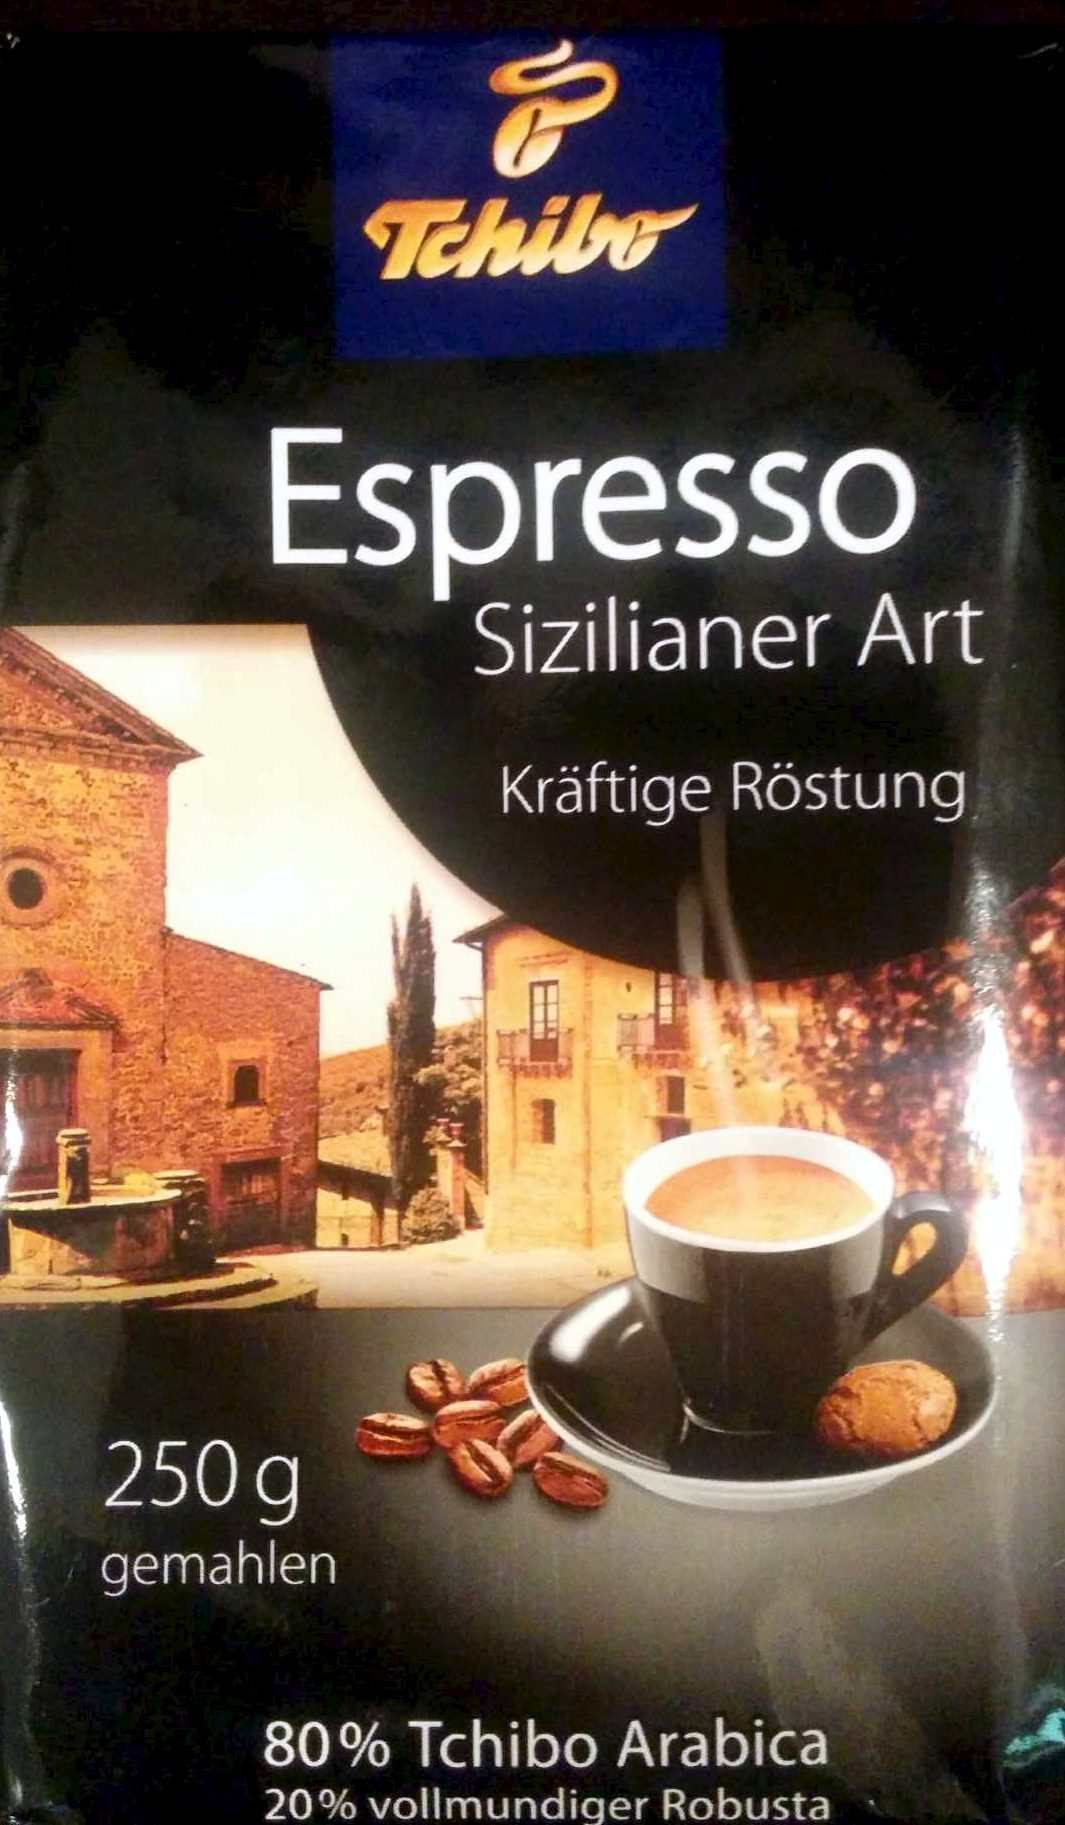 Espresso Siziliamer Art - Product - en